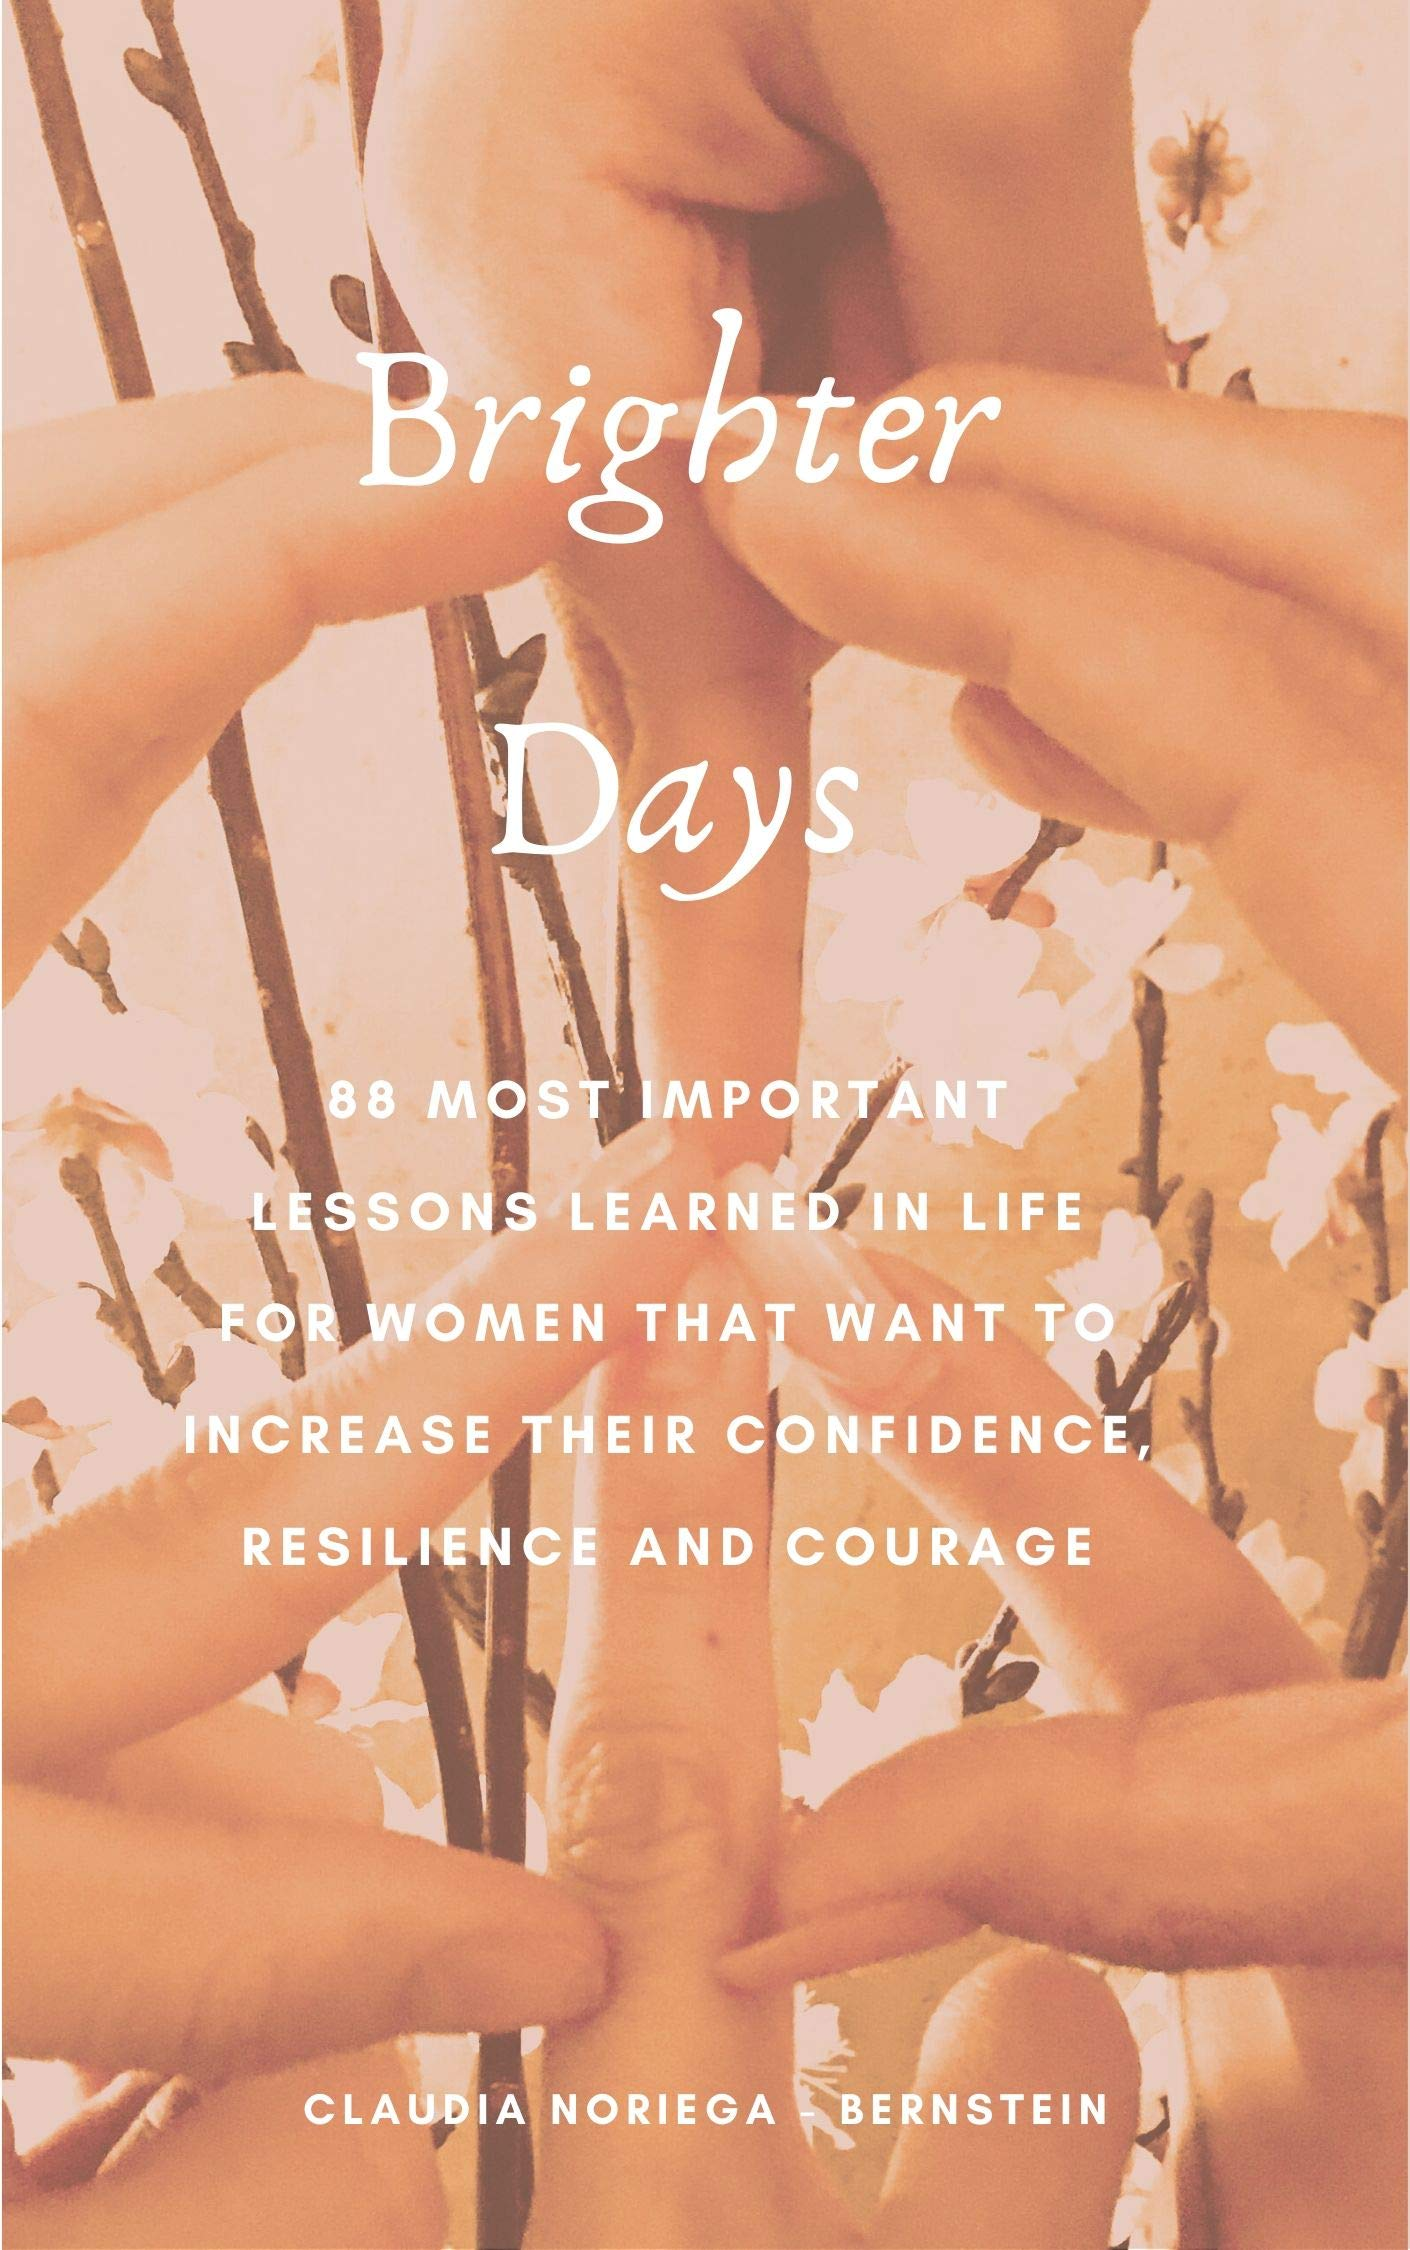 88 Most Important Lessons Learned in Life for Women that Want to Increase their Confidence, Resilience and Courage: Brighter Days